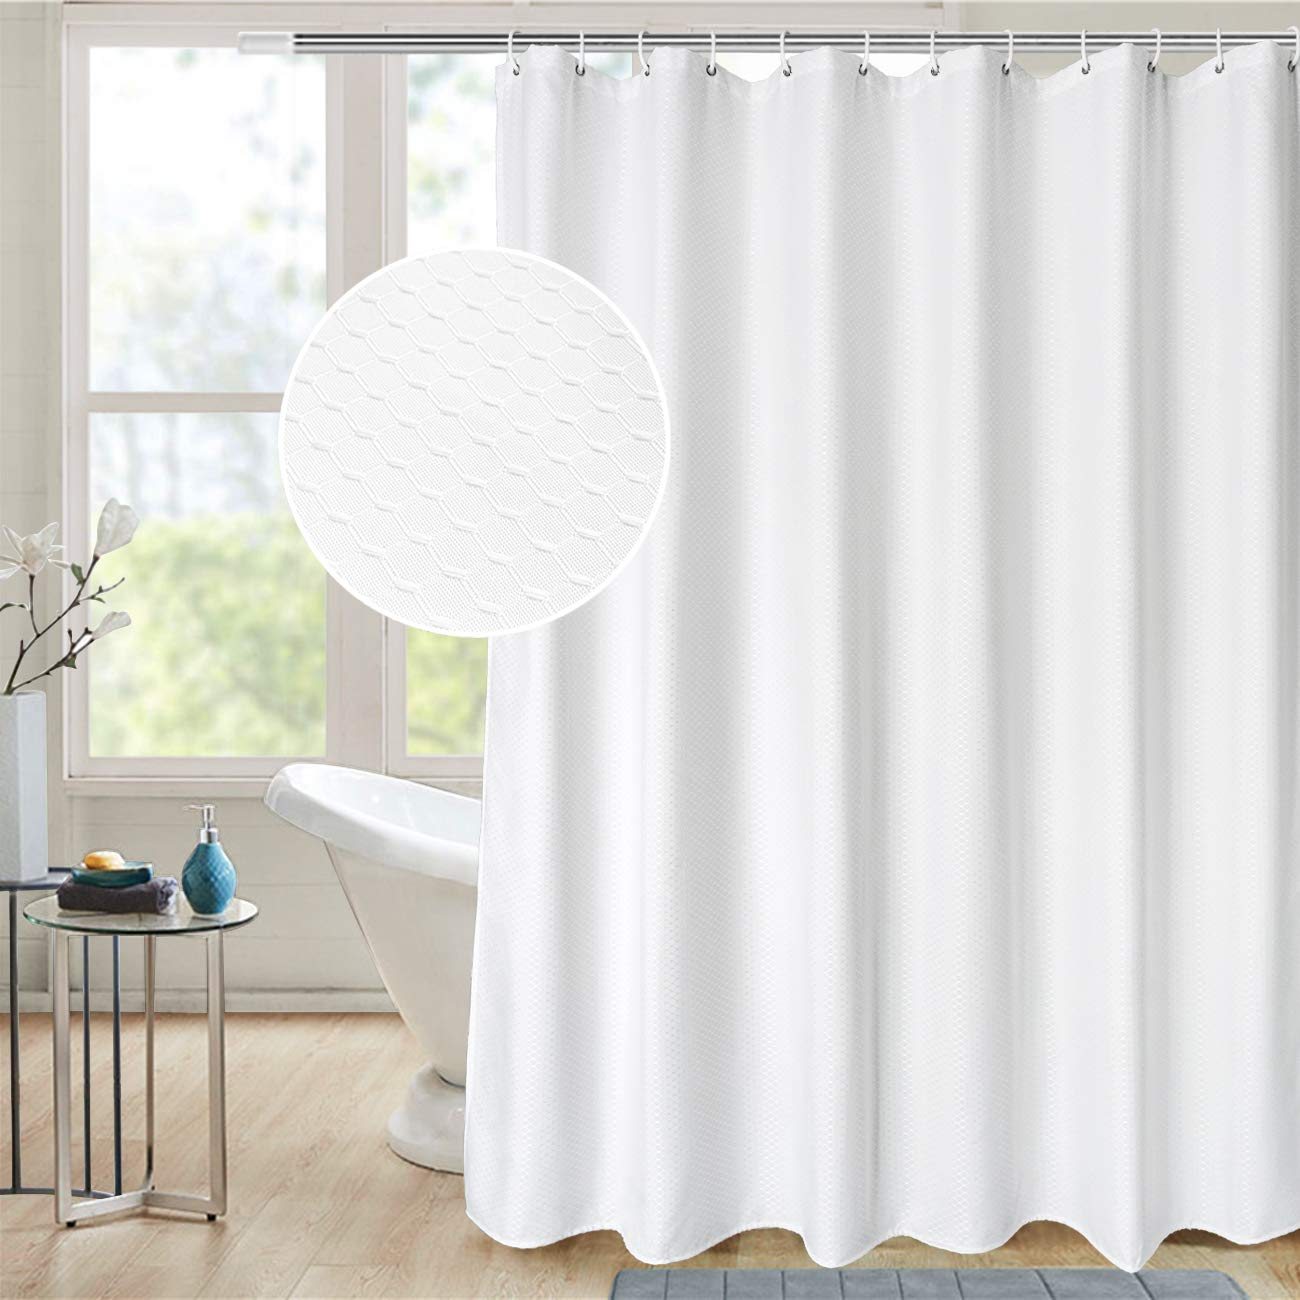 AooHome 72x78 Inch White Shower Curtain, Extra Long Fabric Bathroom Curtain Waffle Weave Design with Hooks, Weighted Hem, Heavy Duty, Water Repellent, 72 Width by 78 Height Inch